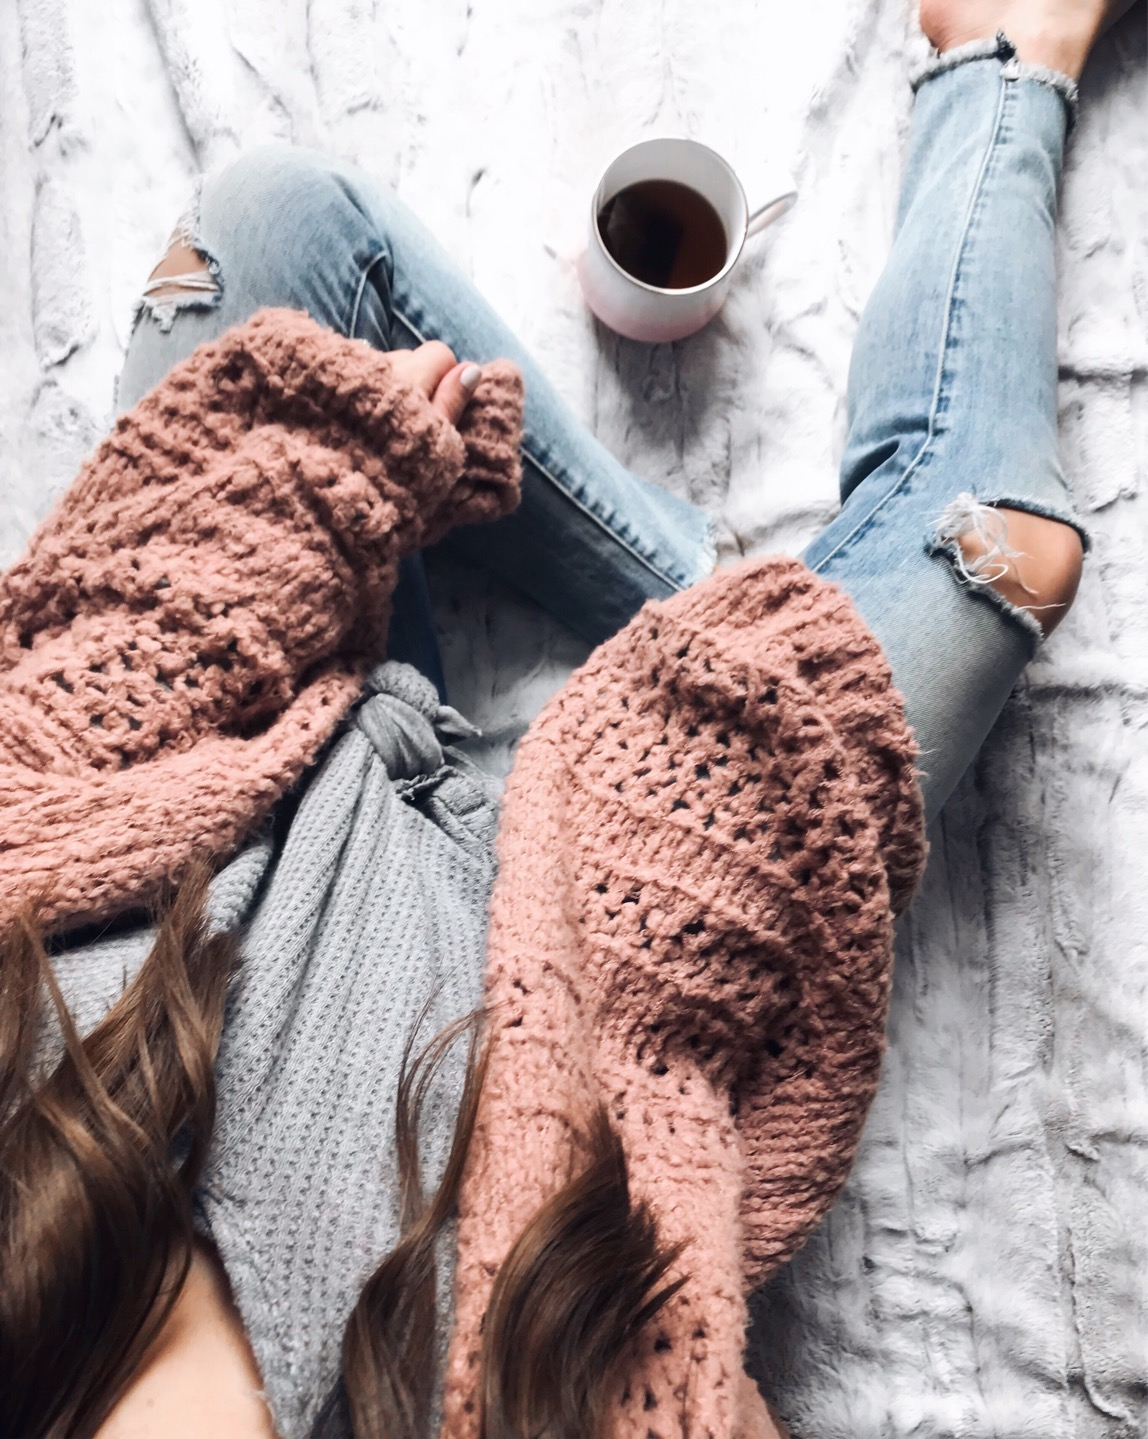 sweater weather / view from above / fall feels / fall vibes / cozy cardigan